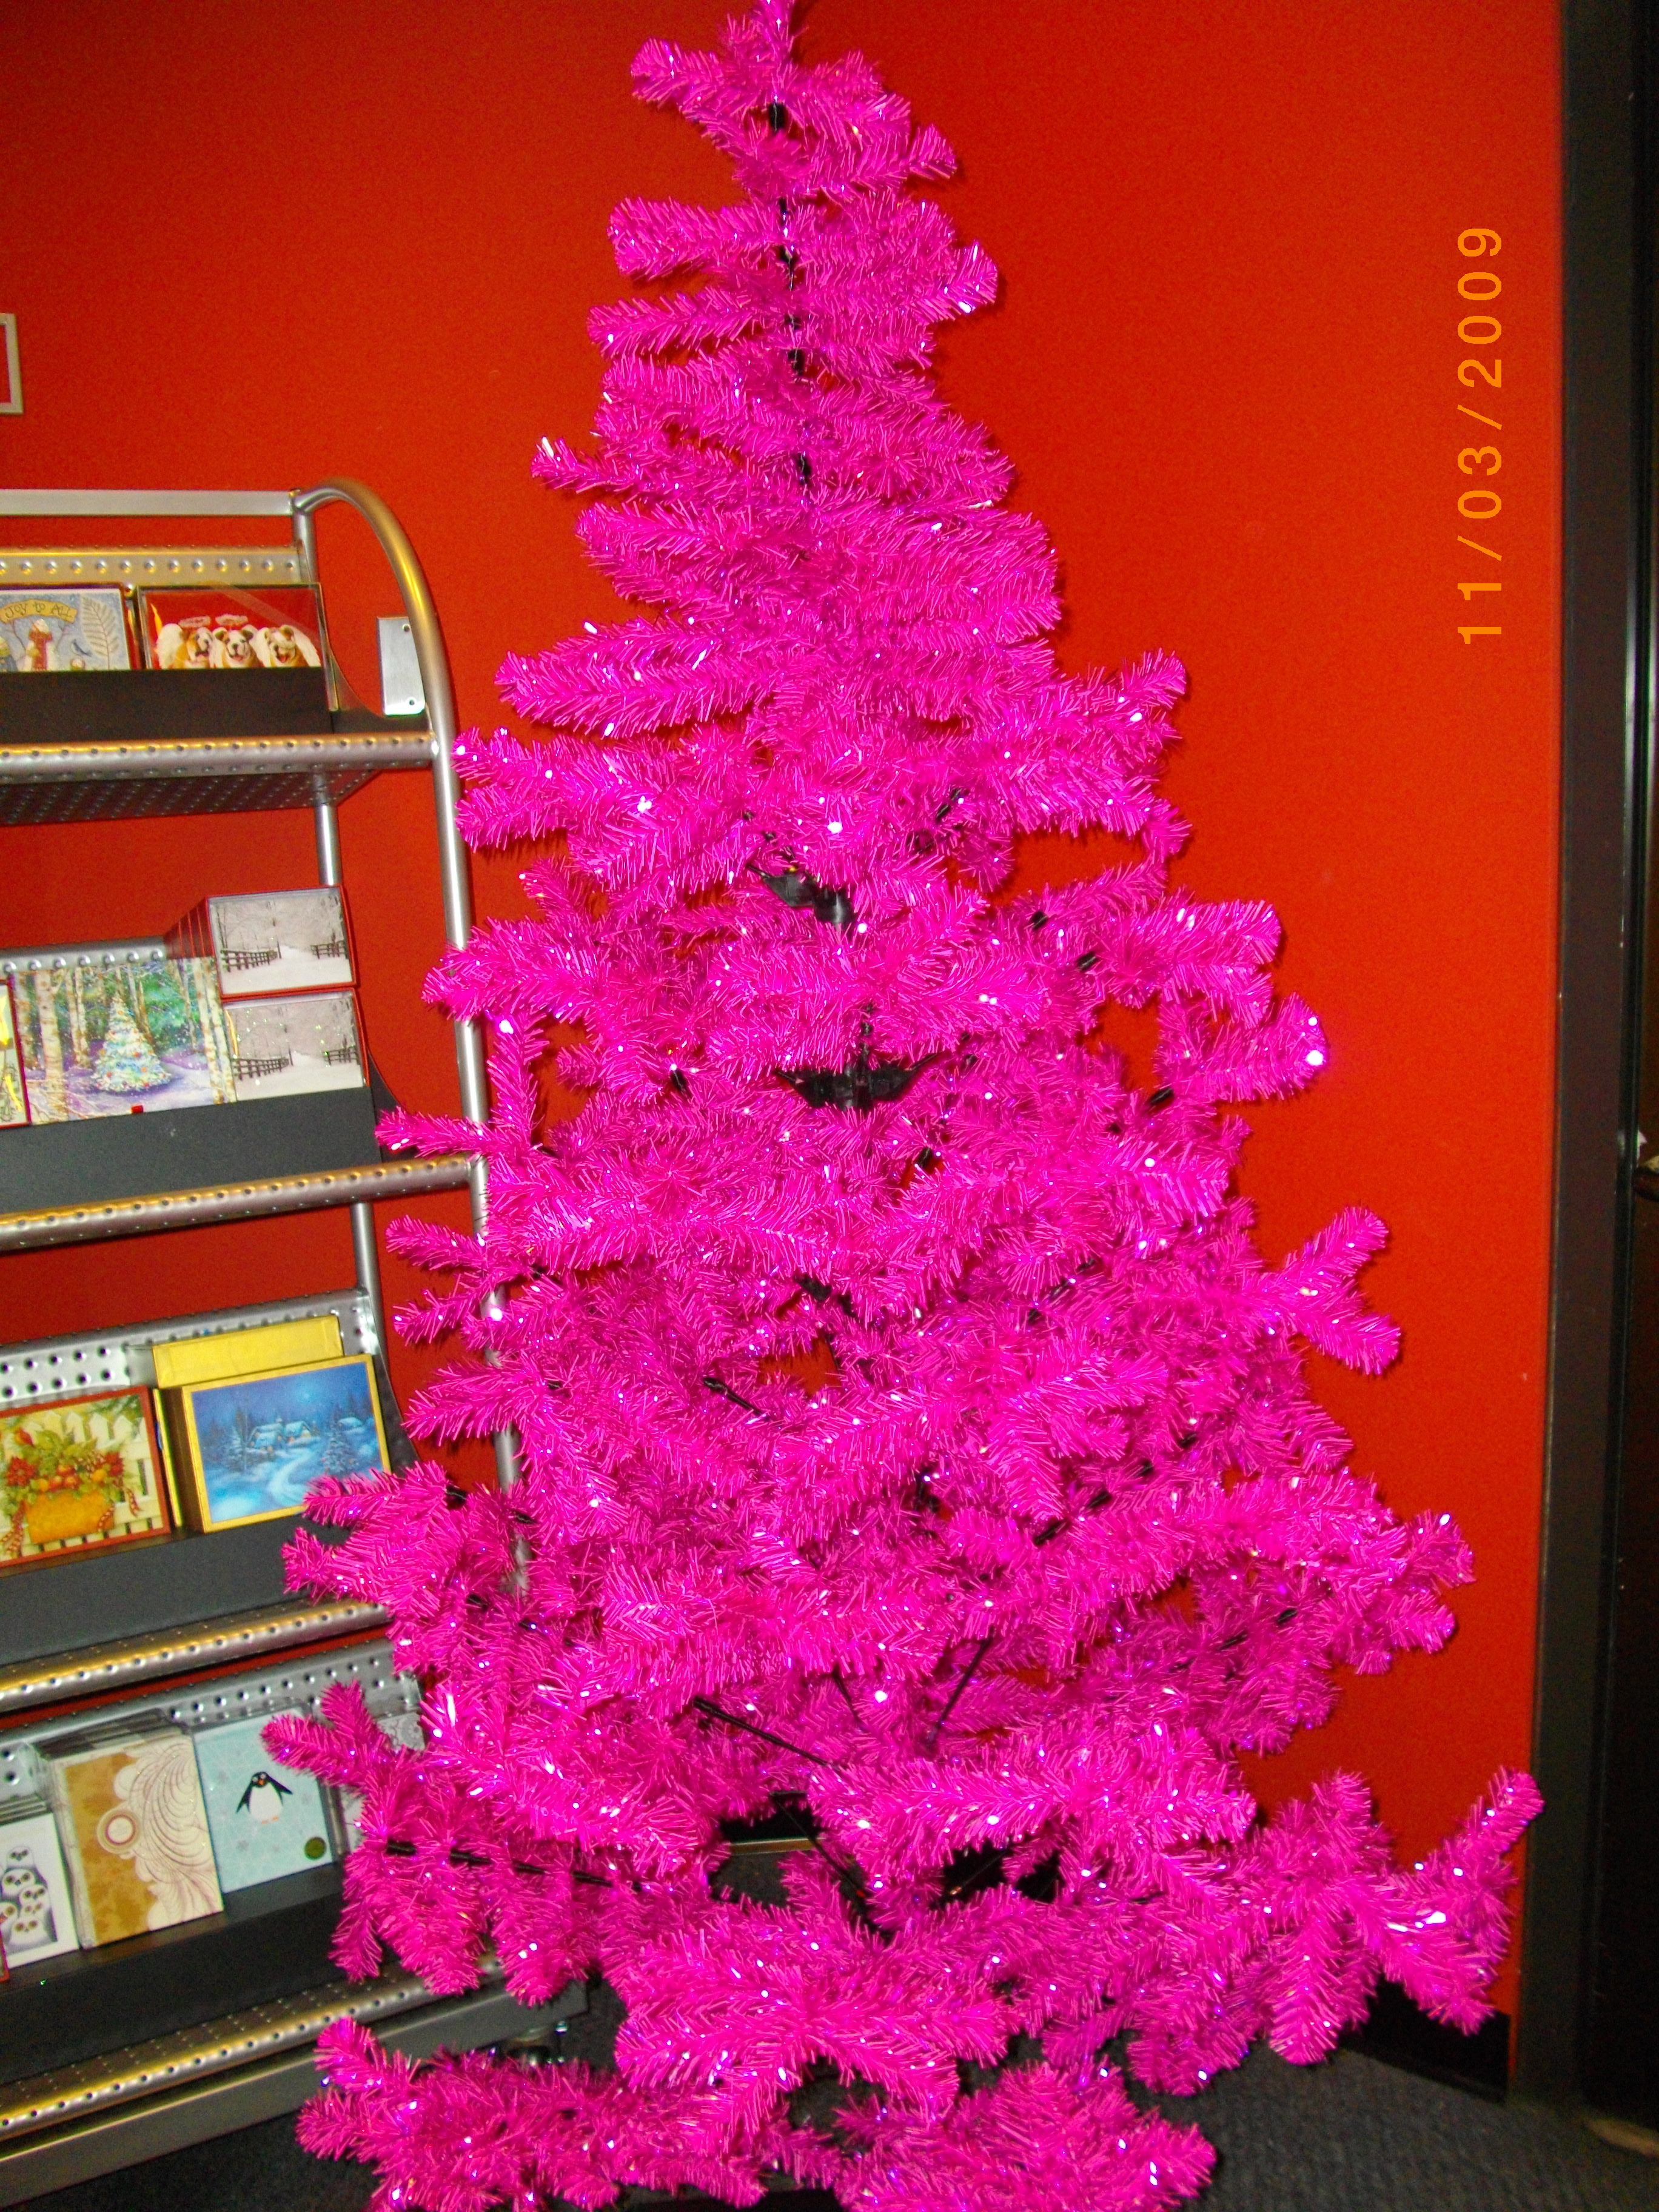 My pink-obsessed Nana would have loved this tree.